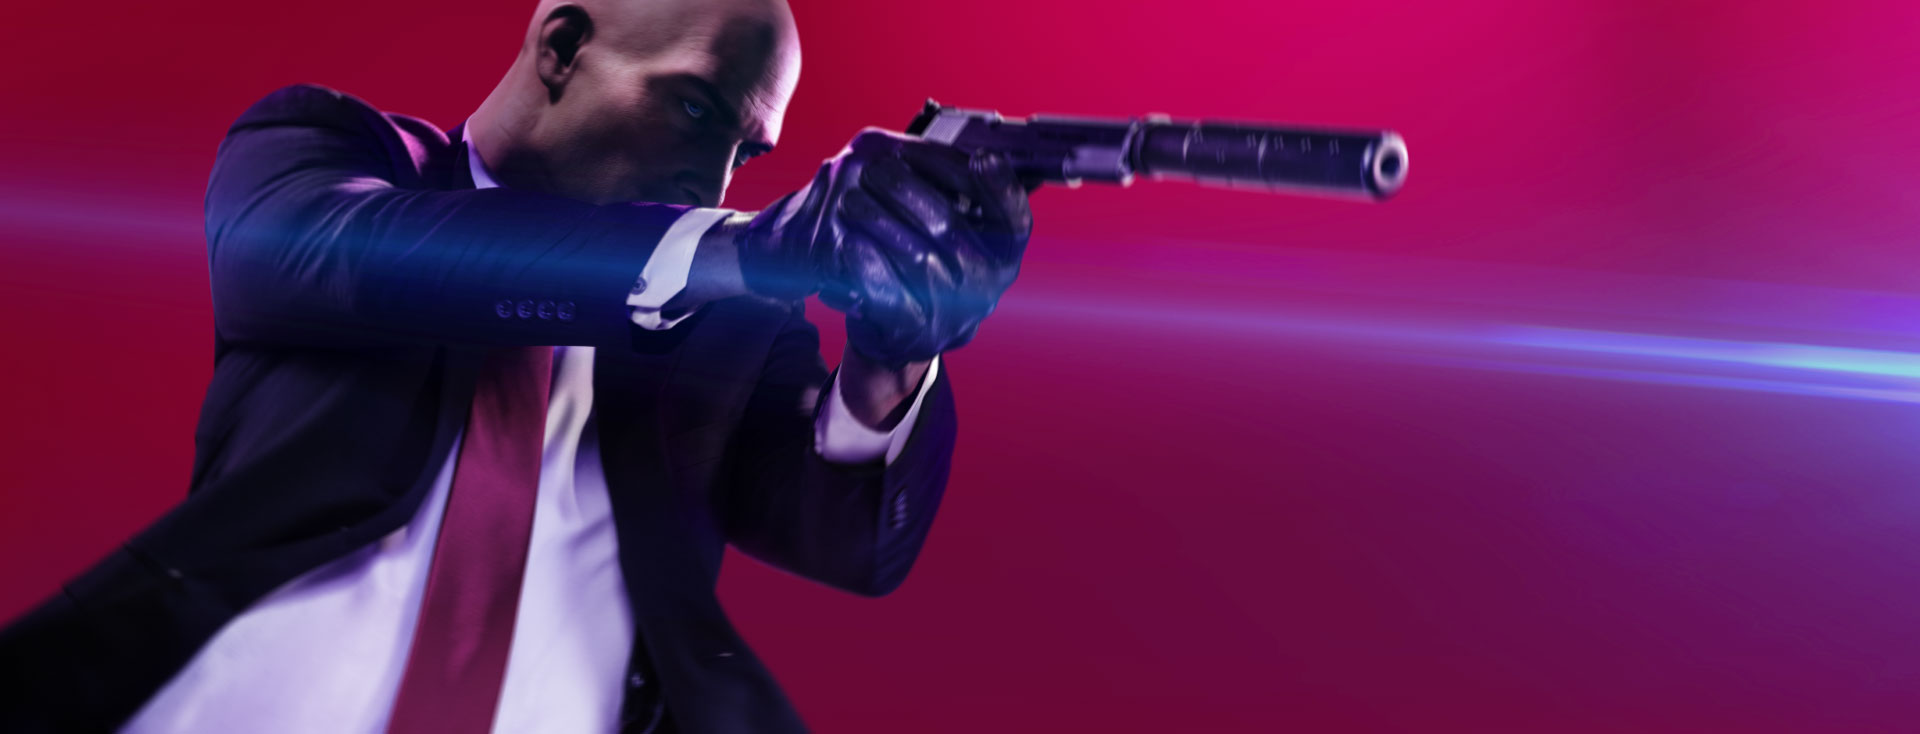 Hitman 2 Way Switch Feed At Watch The Latest Trailer